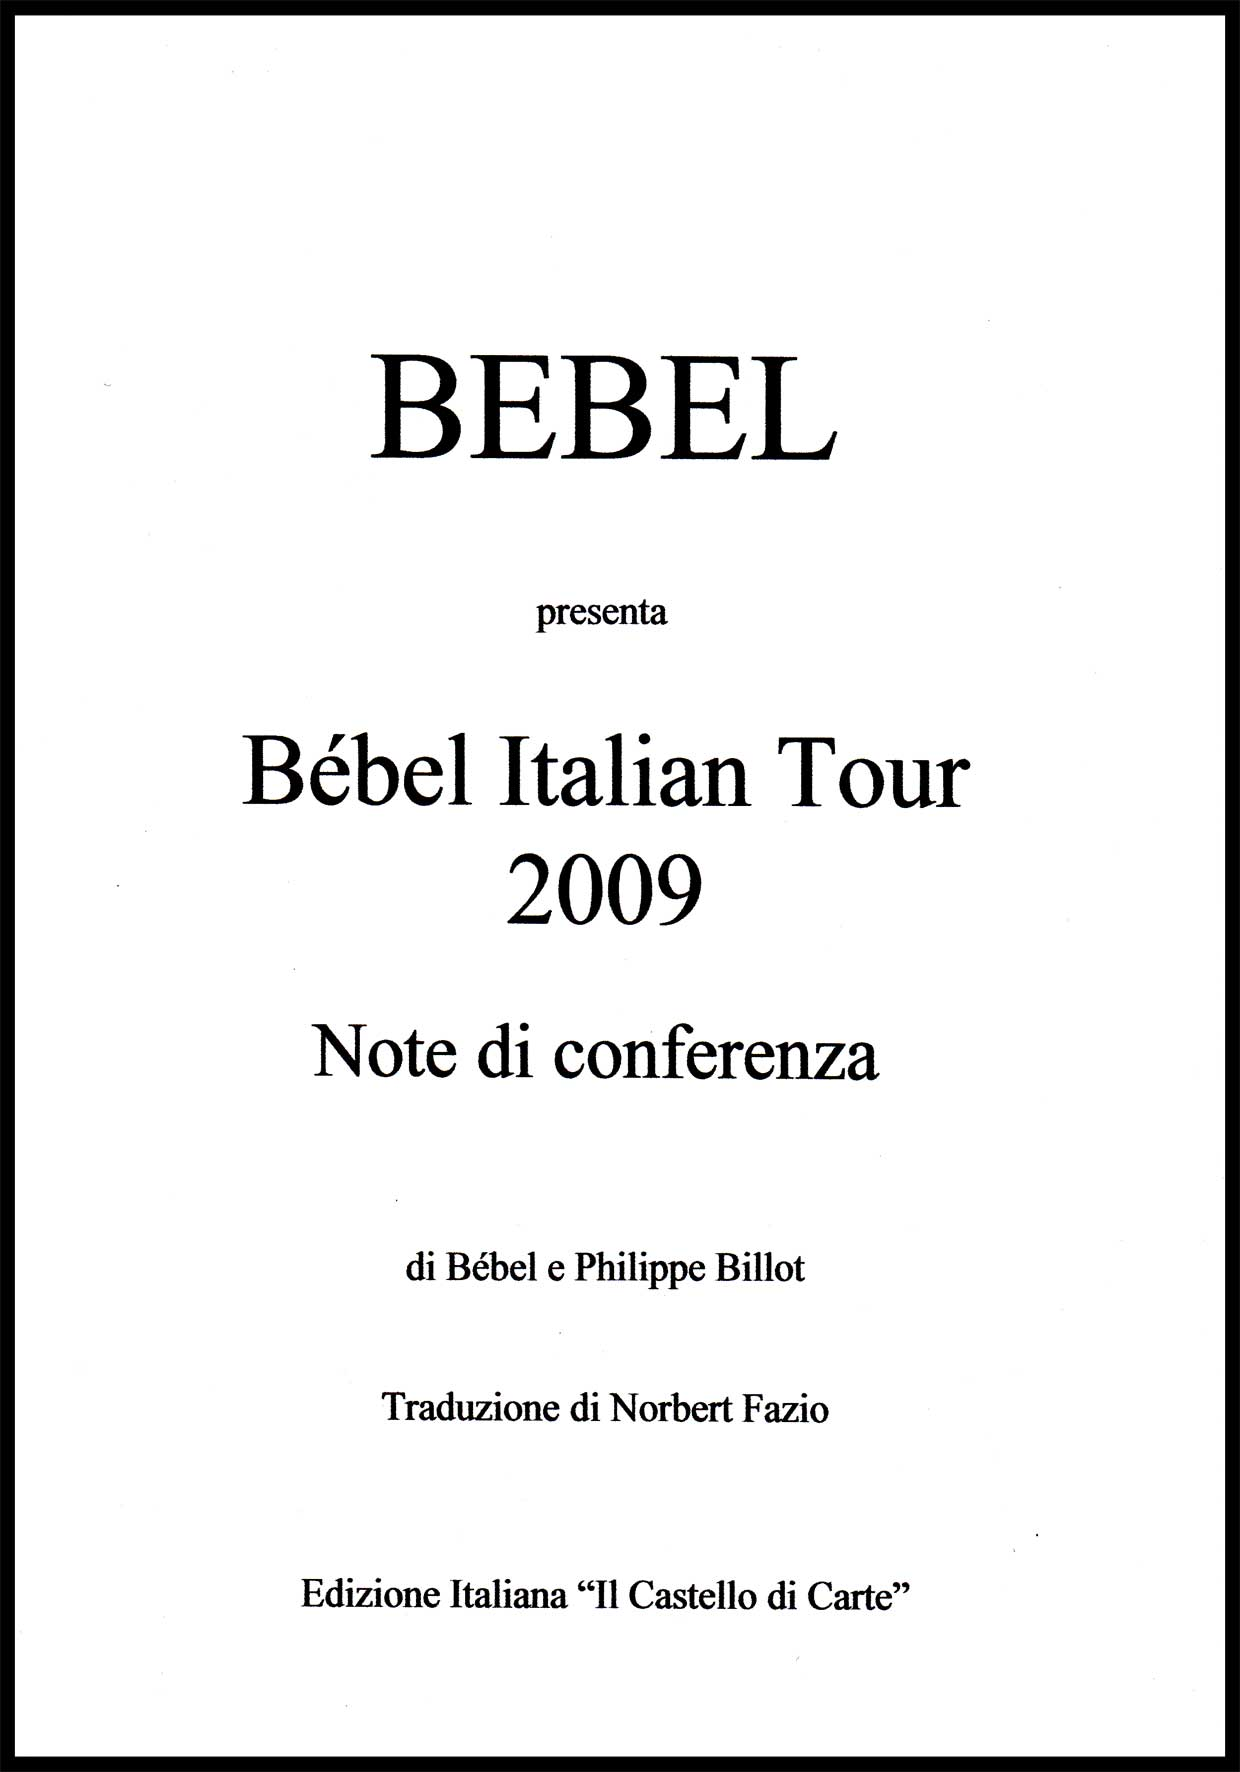 Bébel_Note